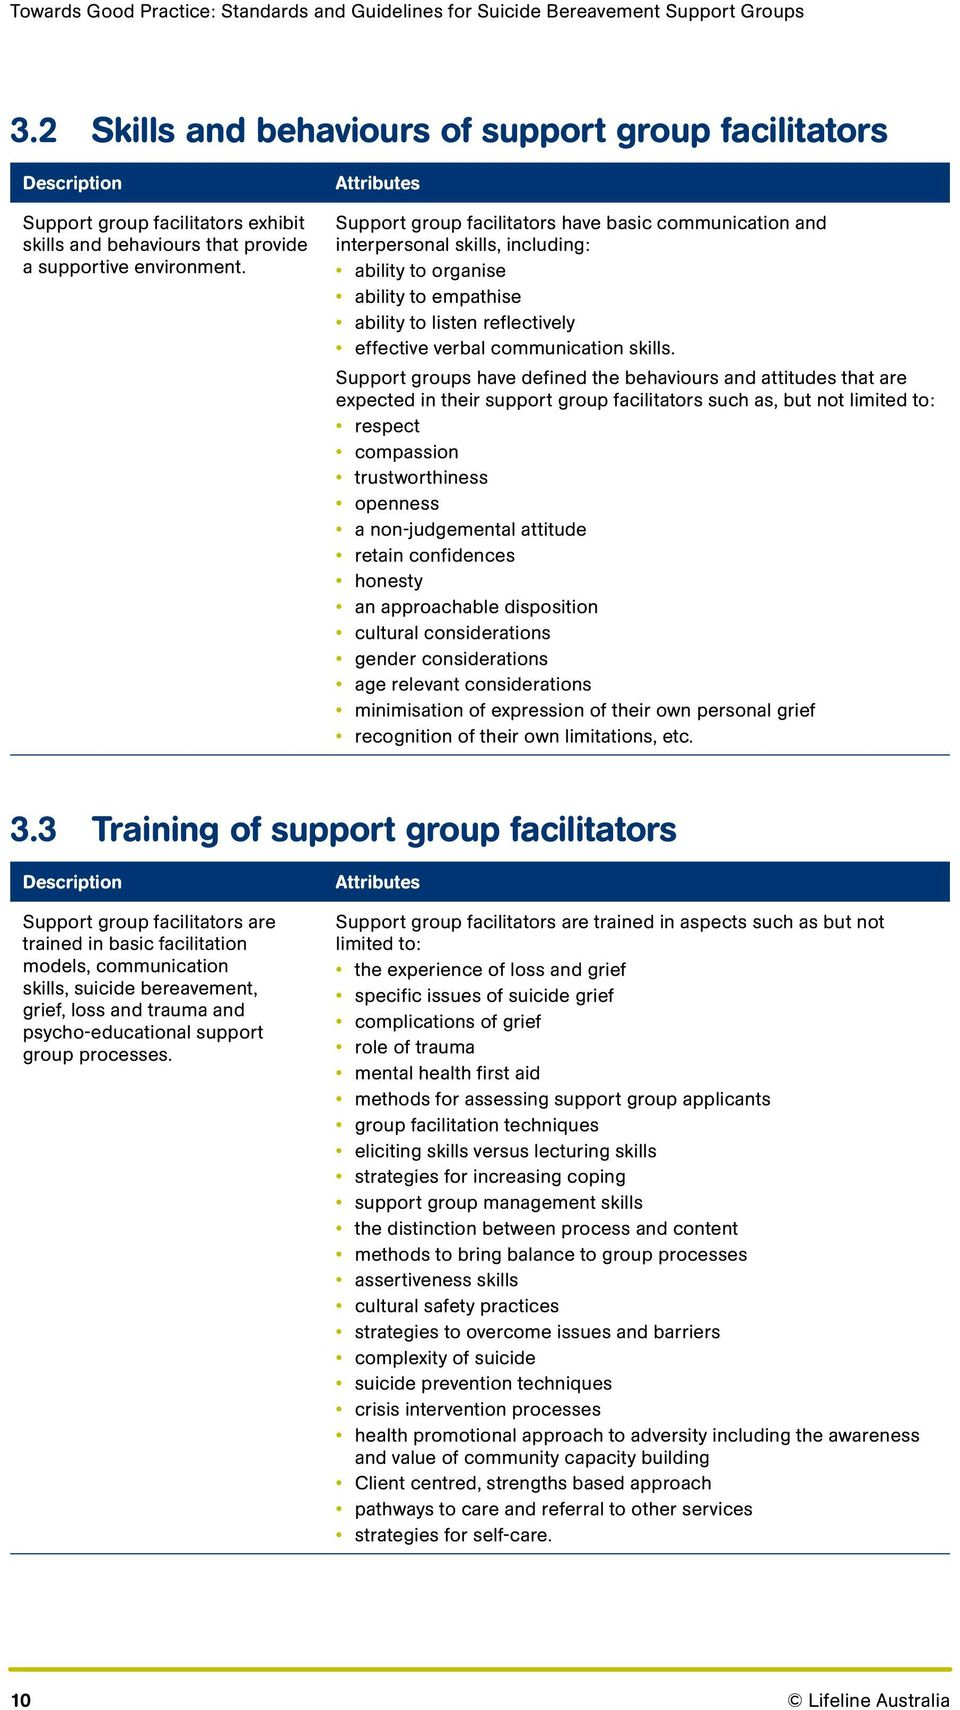 Support group facilitators have basic communication and interpersonal skills, including: ability to organise ability to empathise ability to listen reflectively effective verbal communication skills.